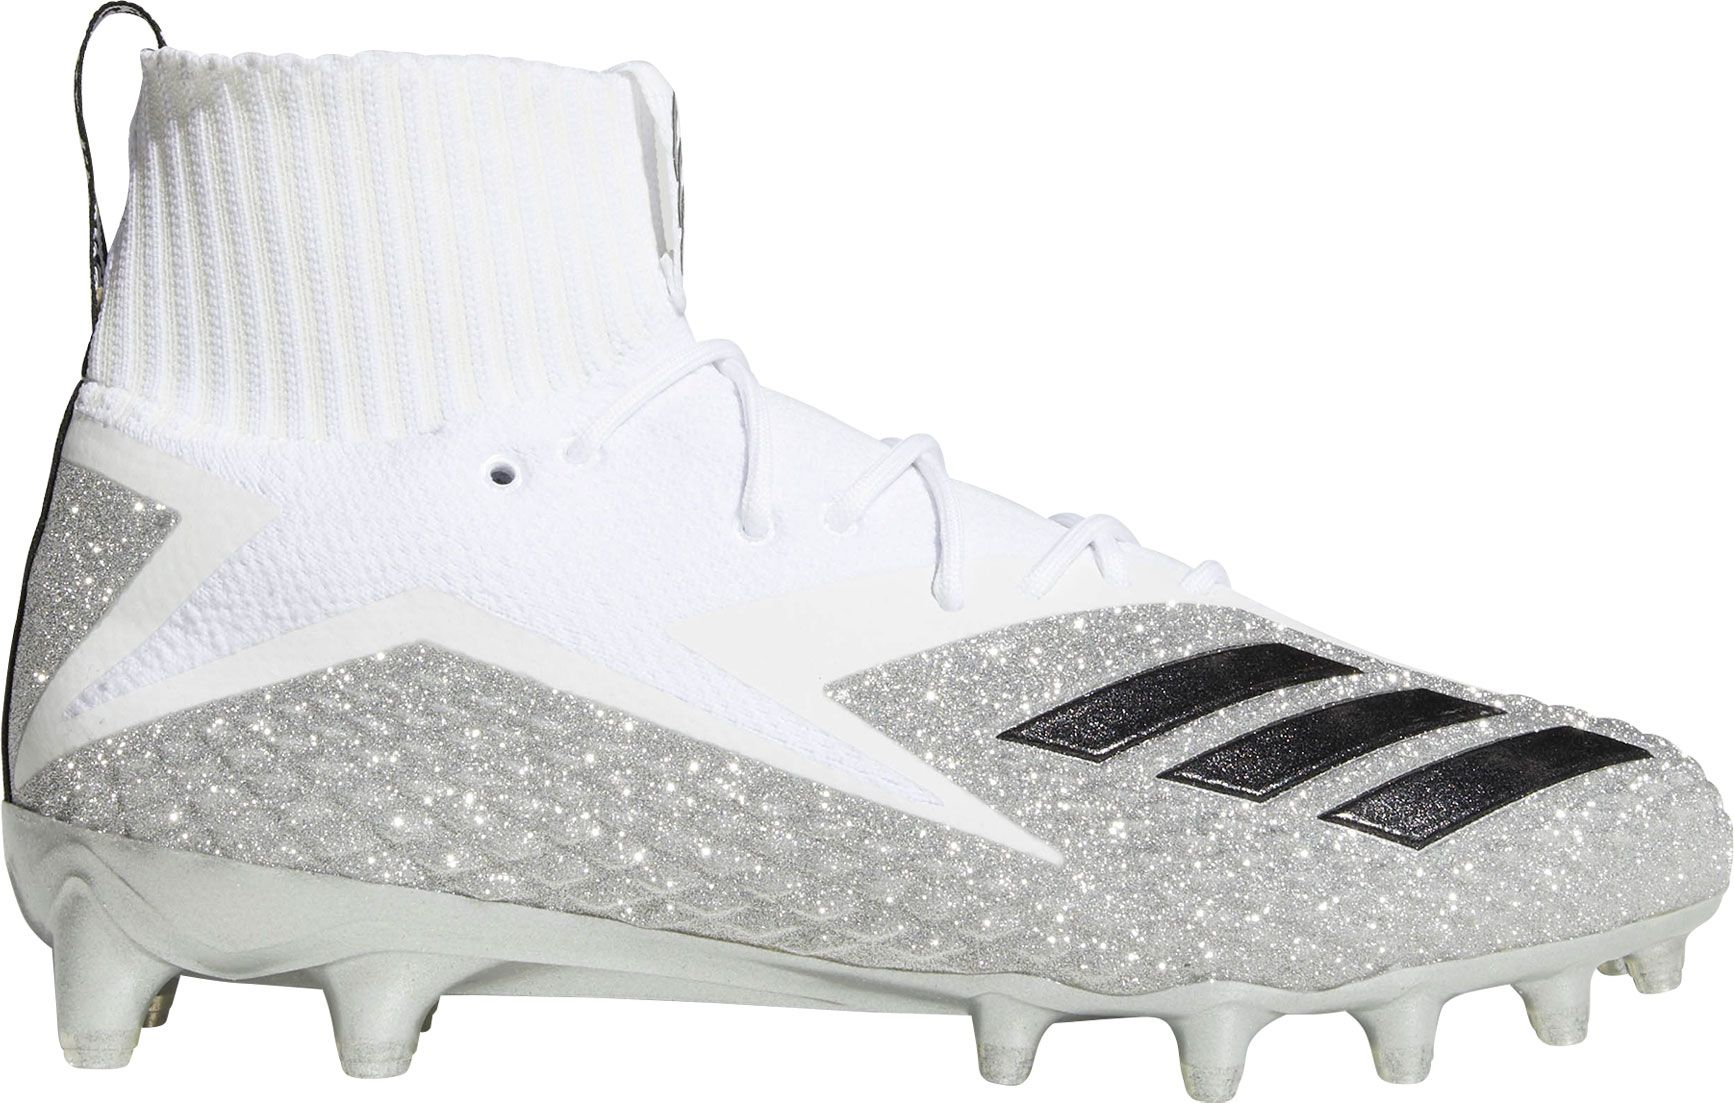 adidas football cleats all white